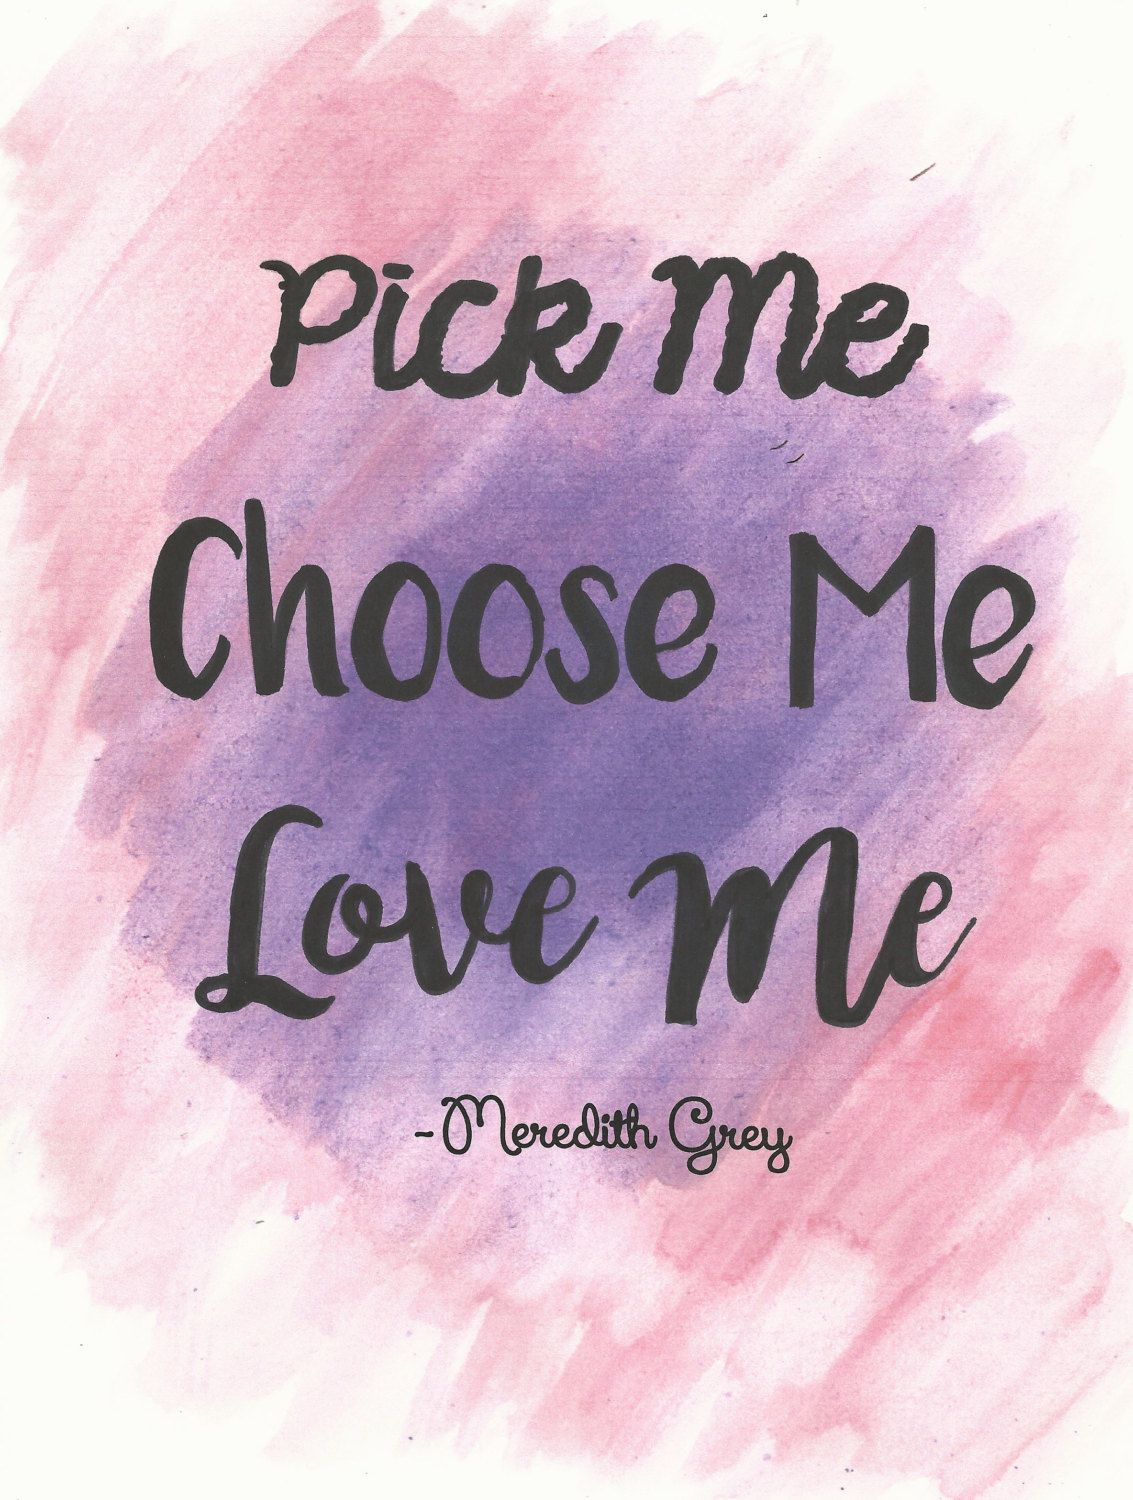 Love Me Quotes Wallpaper : Pick me, choose me, love me- Meredith Grey Grey s Anatomy Quote Hand Painted Water color- 8x11 ...